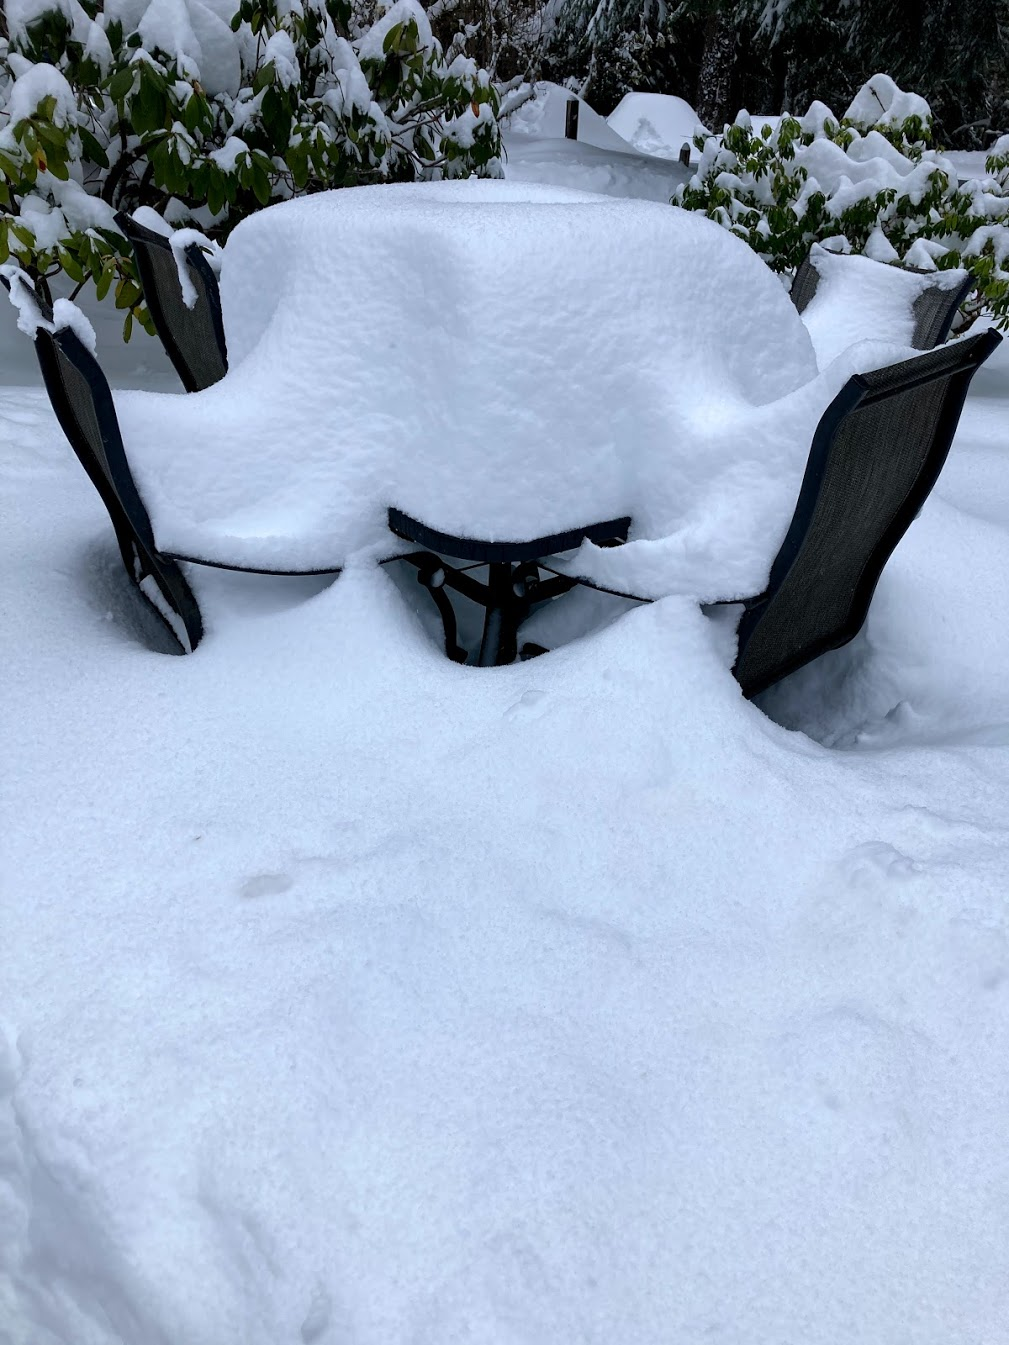 snow covered table and chairs